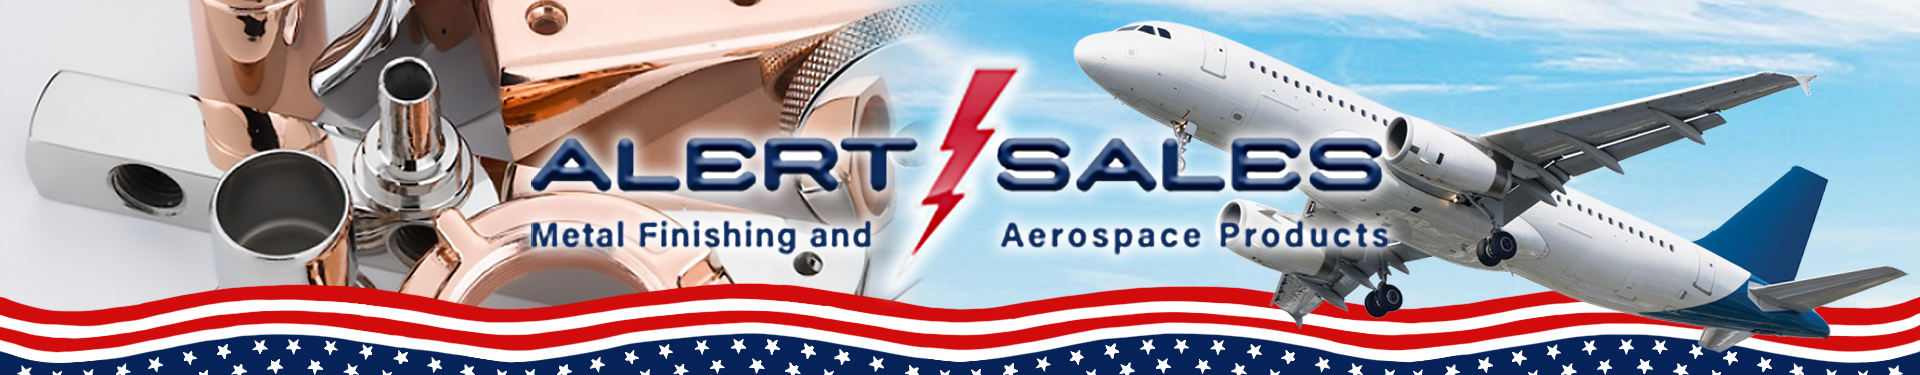 Alert Sales Metal Finishing and Aerospace Products